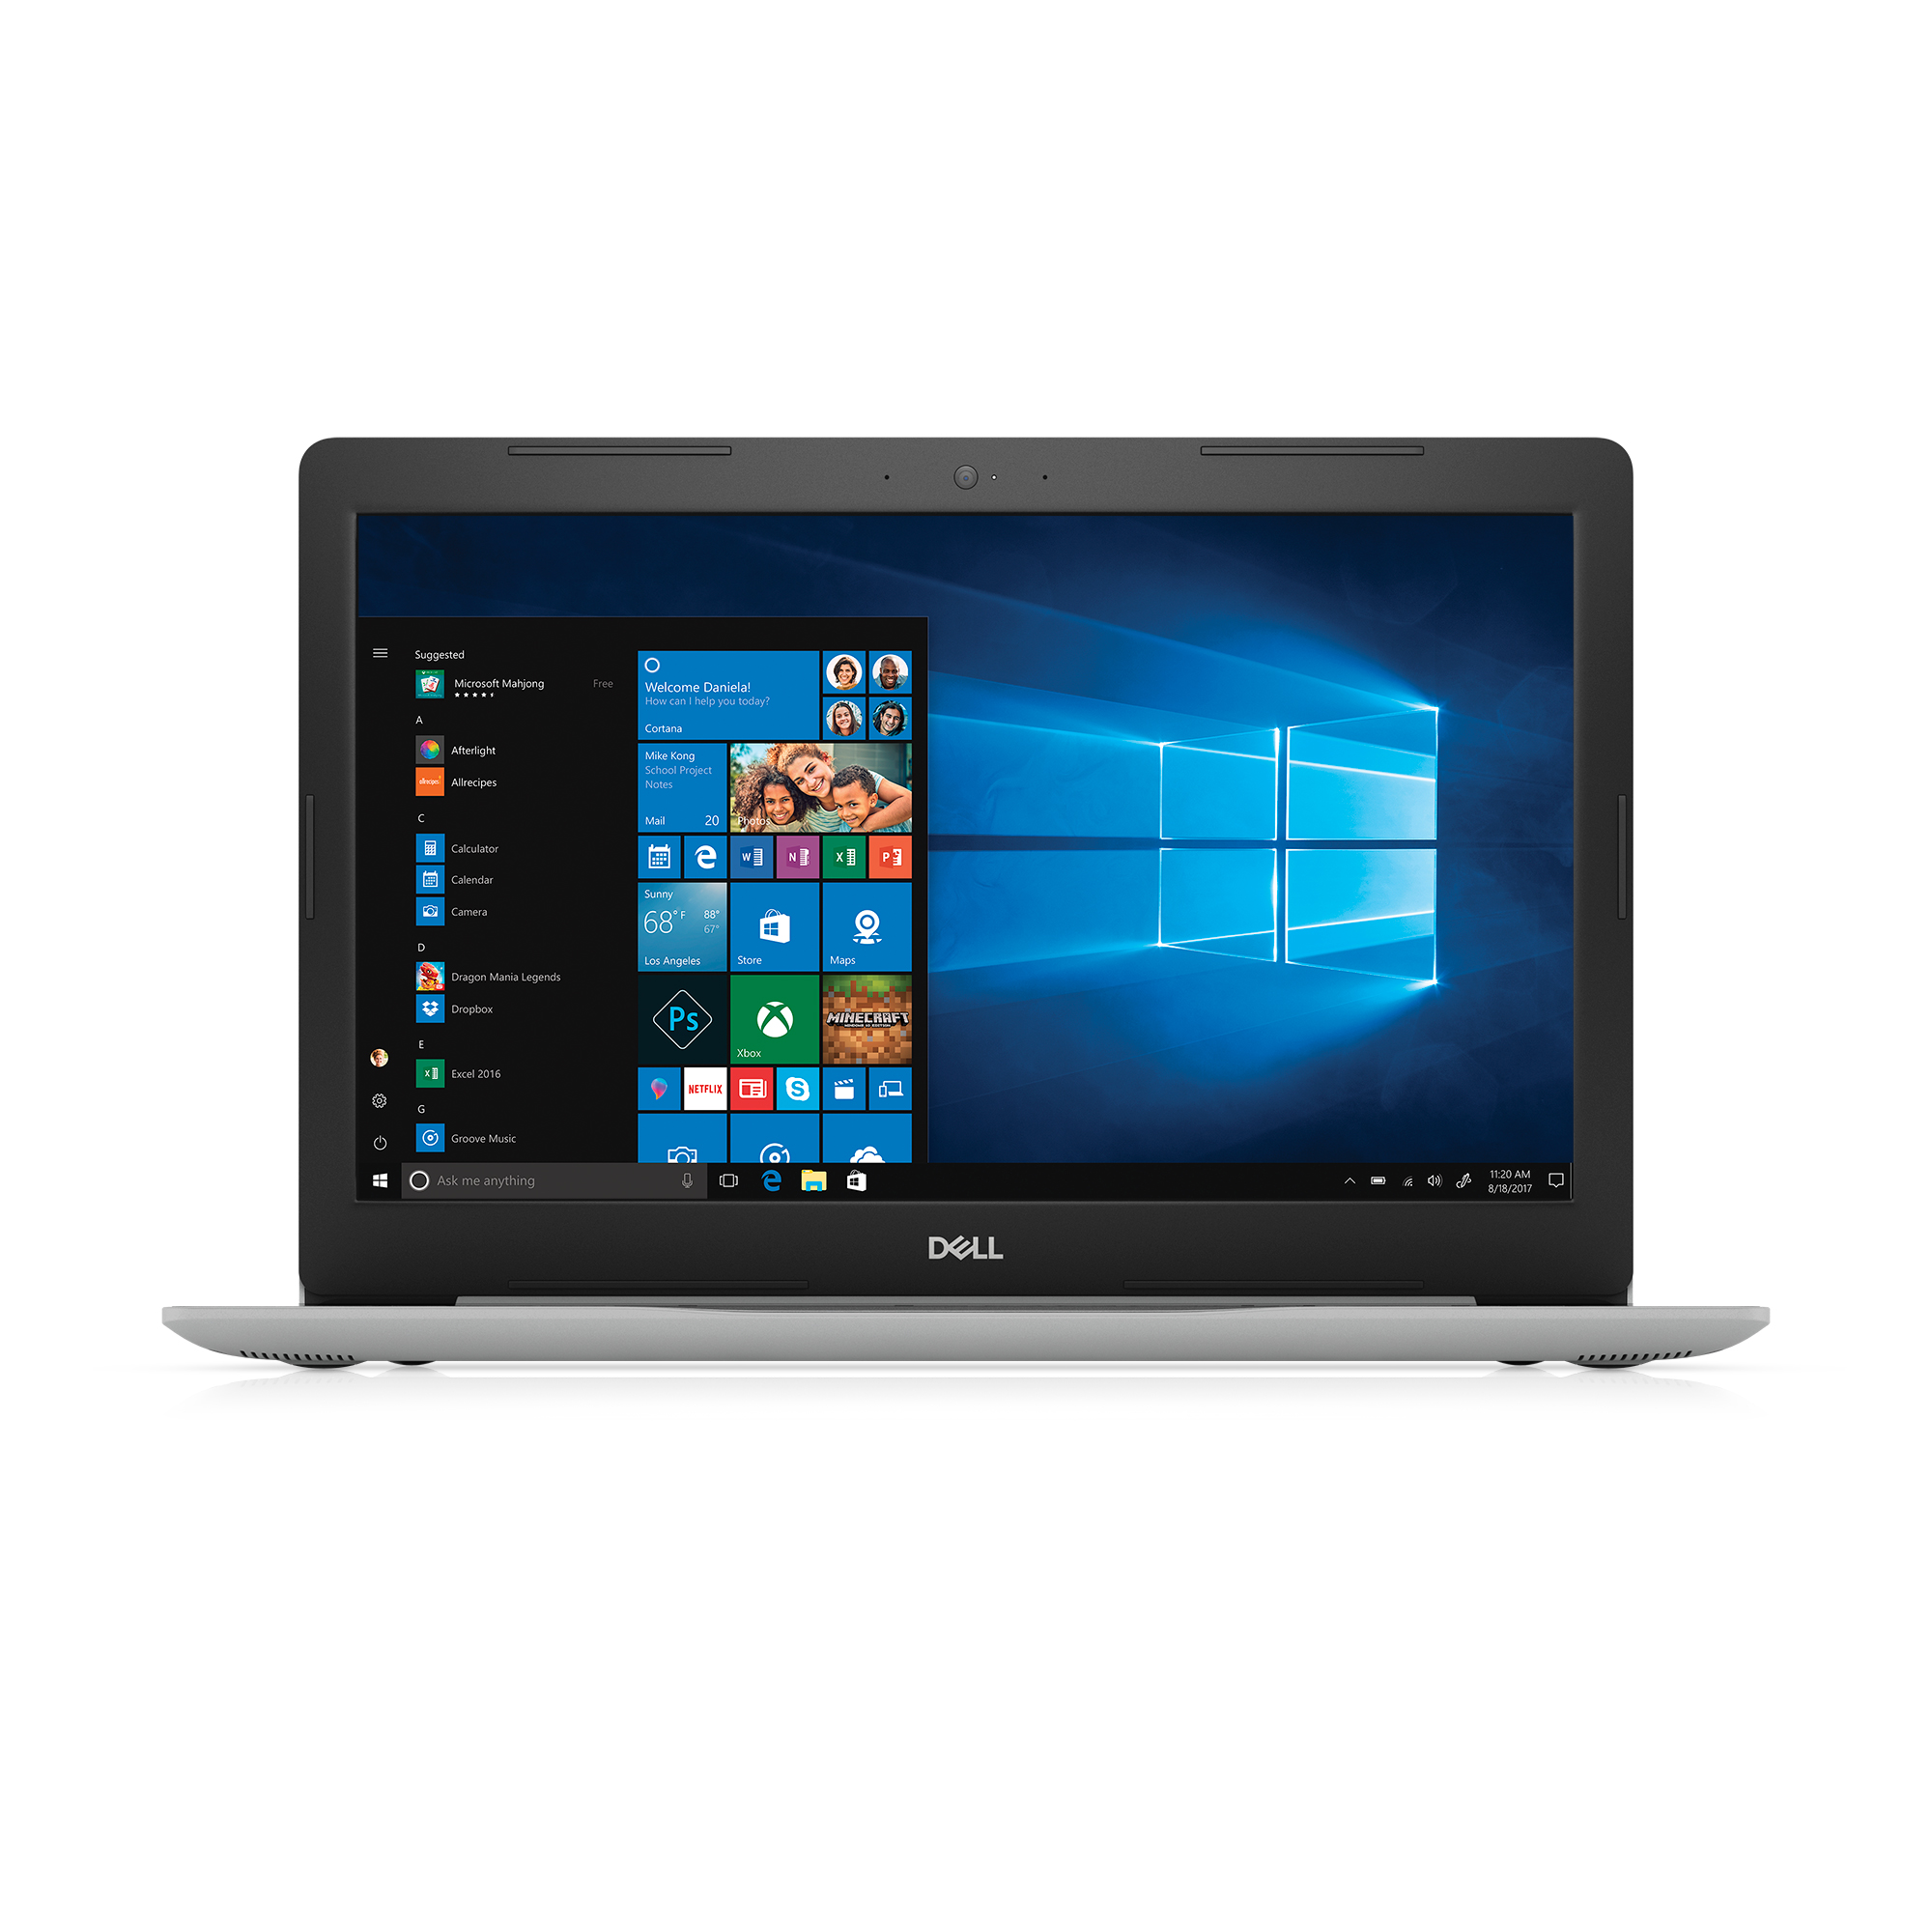 "Dell Inspiron 15 5570 Series 15.6"" HD Laptop (Core i7-7500U / 4GB / 1TB)"